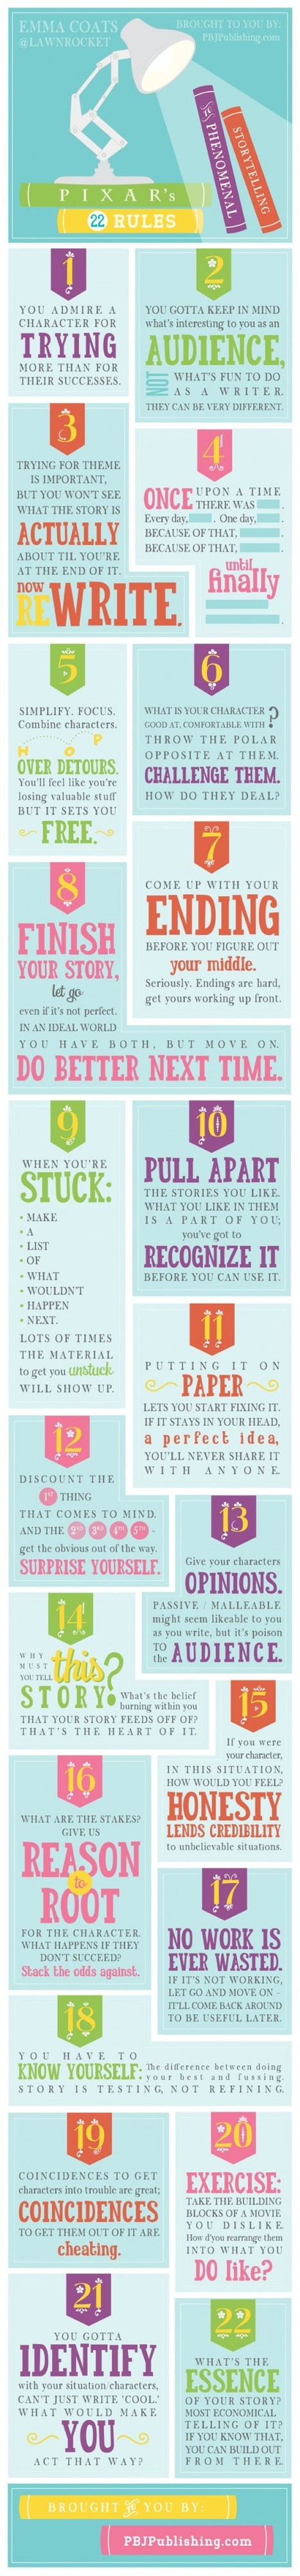 Pixar's 22 Rules to Phenomenal Storytelling [INFOGRAPHIC] | Great Ideas for Non-Profits | Scoop.it